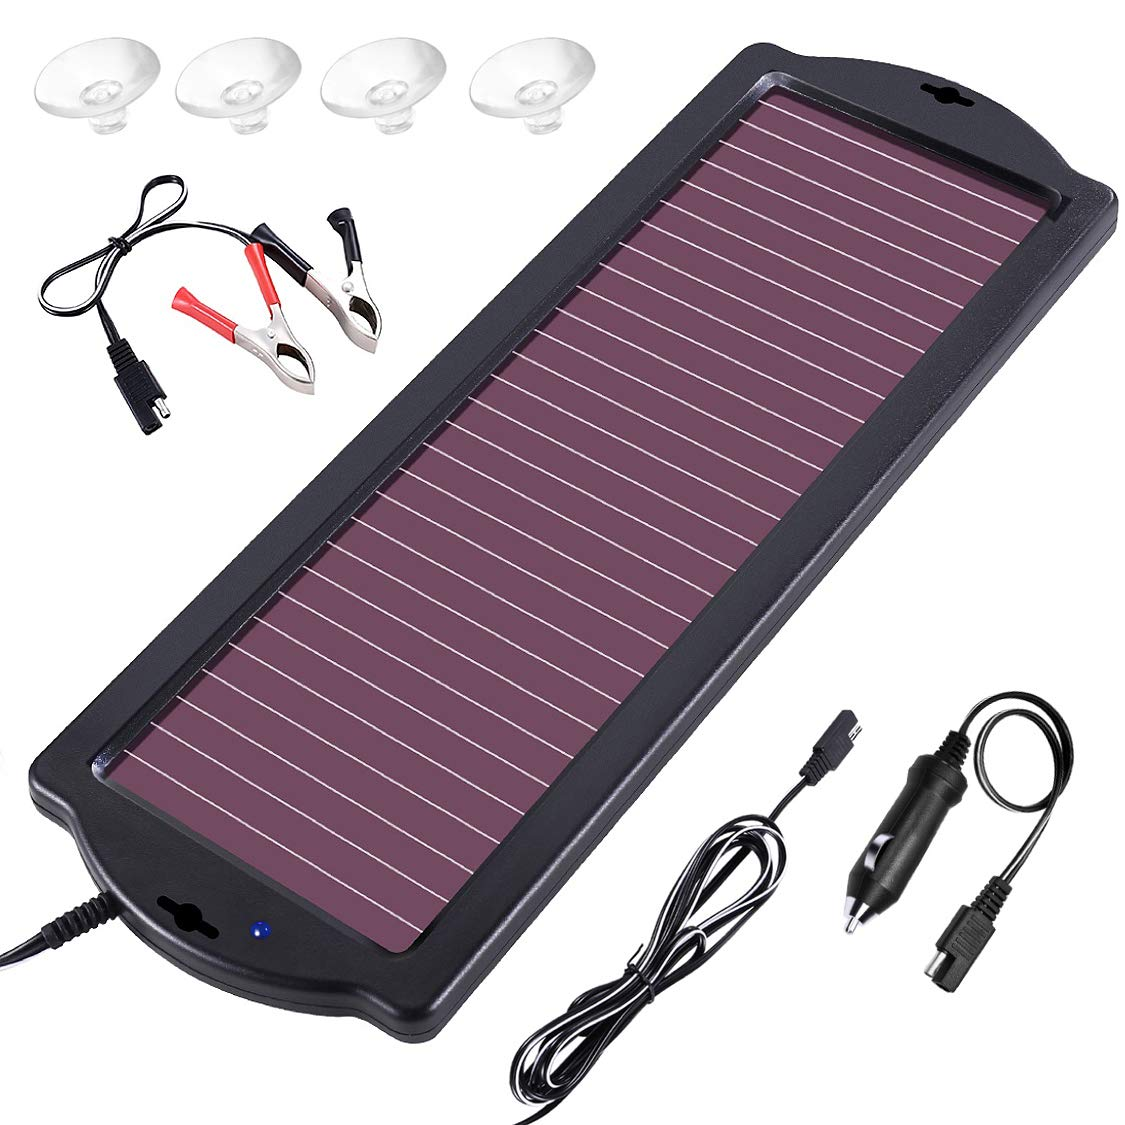 zeal life Solar car Charger 12V 1.8W Solar Battery trickle Charger Waterproof Portable Solar Panel Amorphous for Rv Motorcycle Boat Marine Vehicle Snowmobile Watercraft.